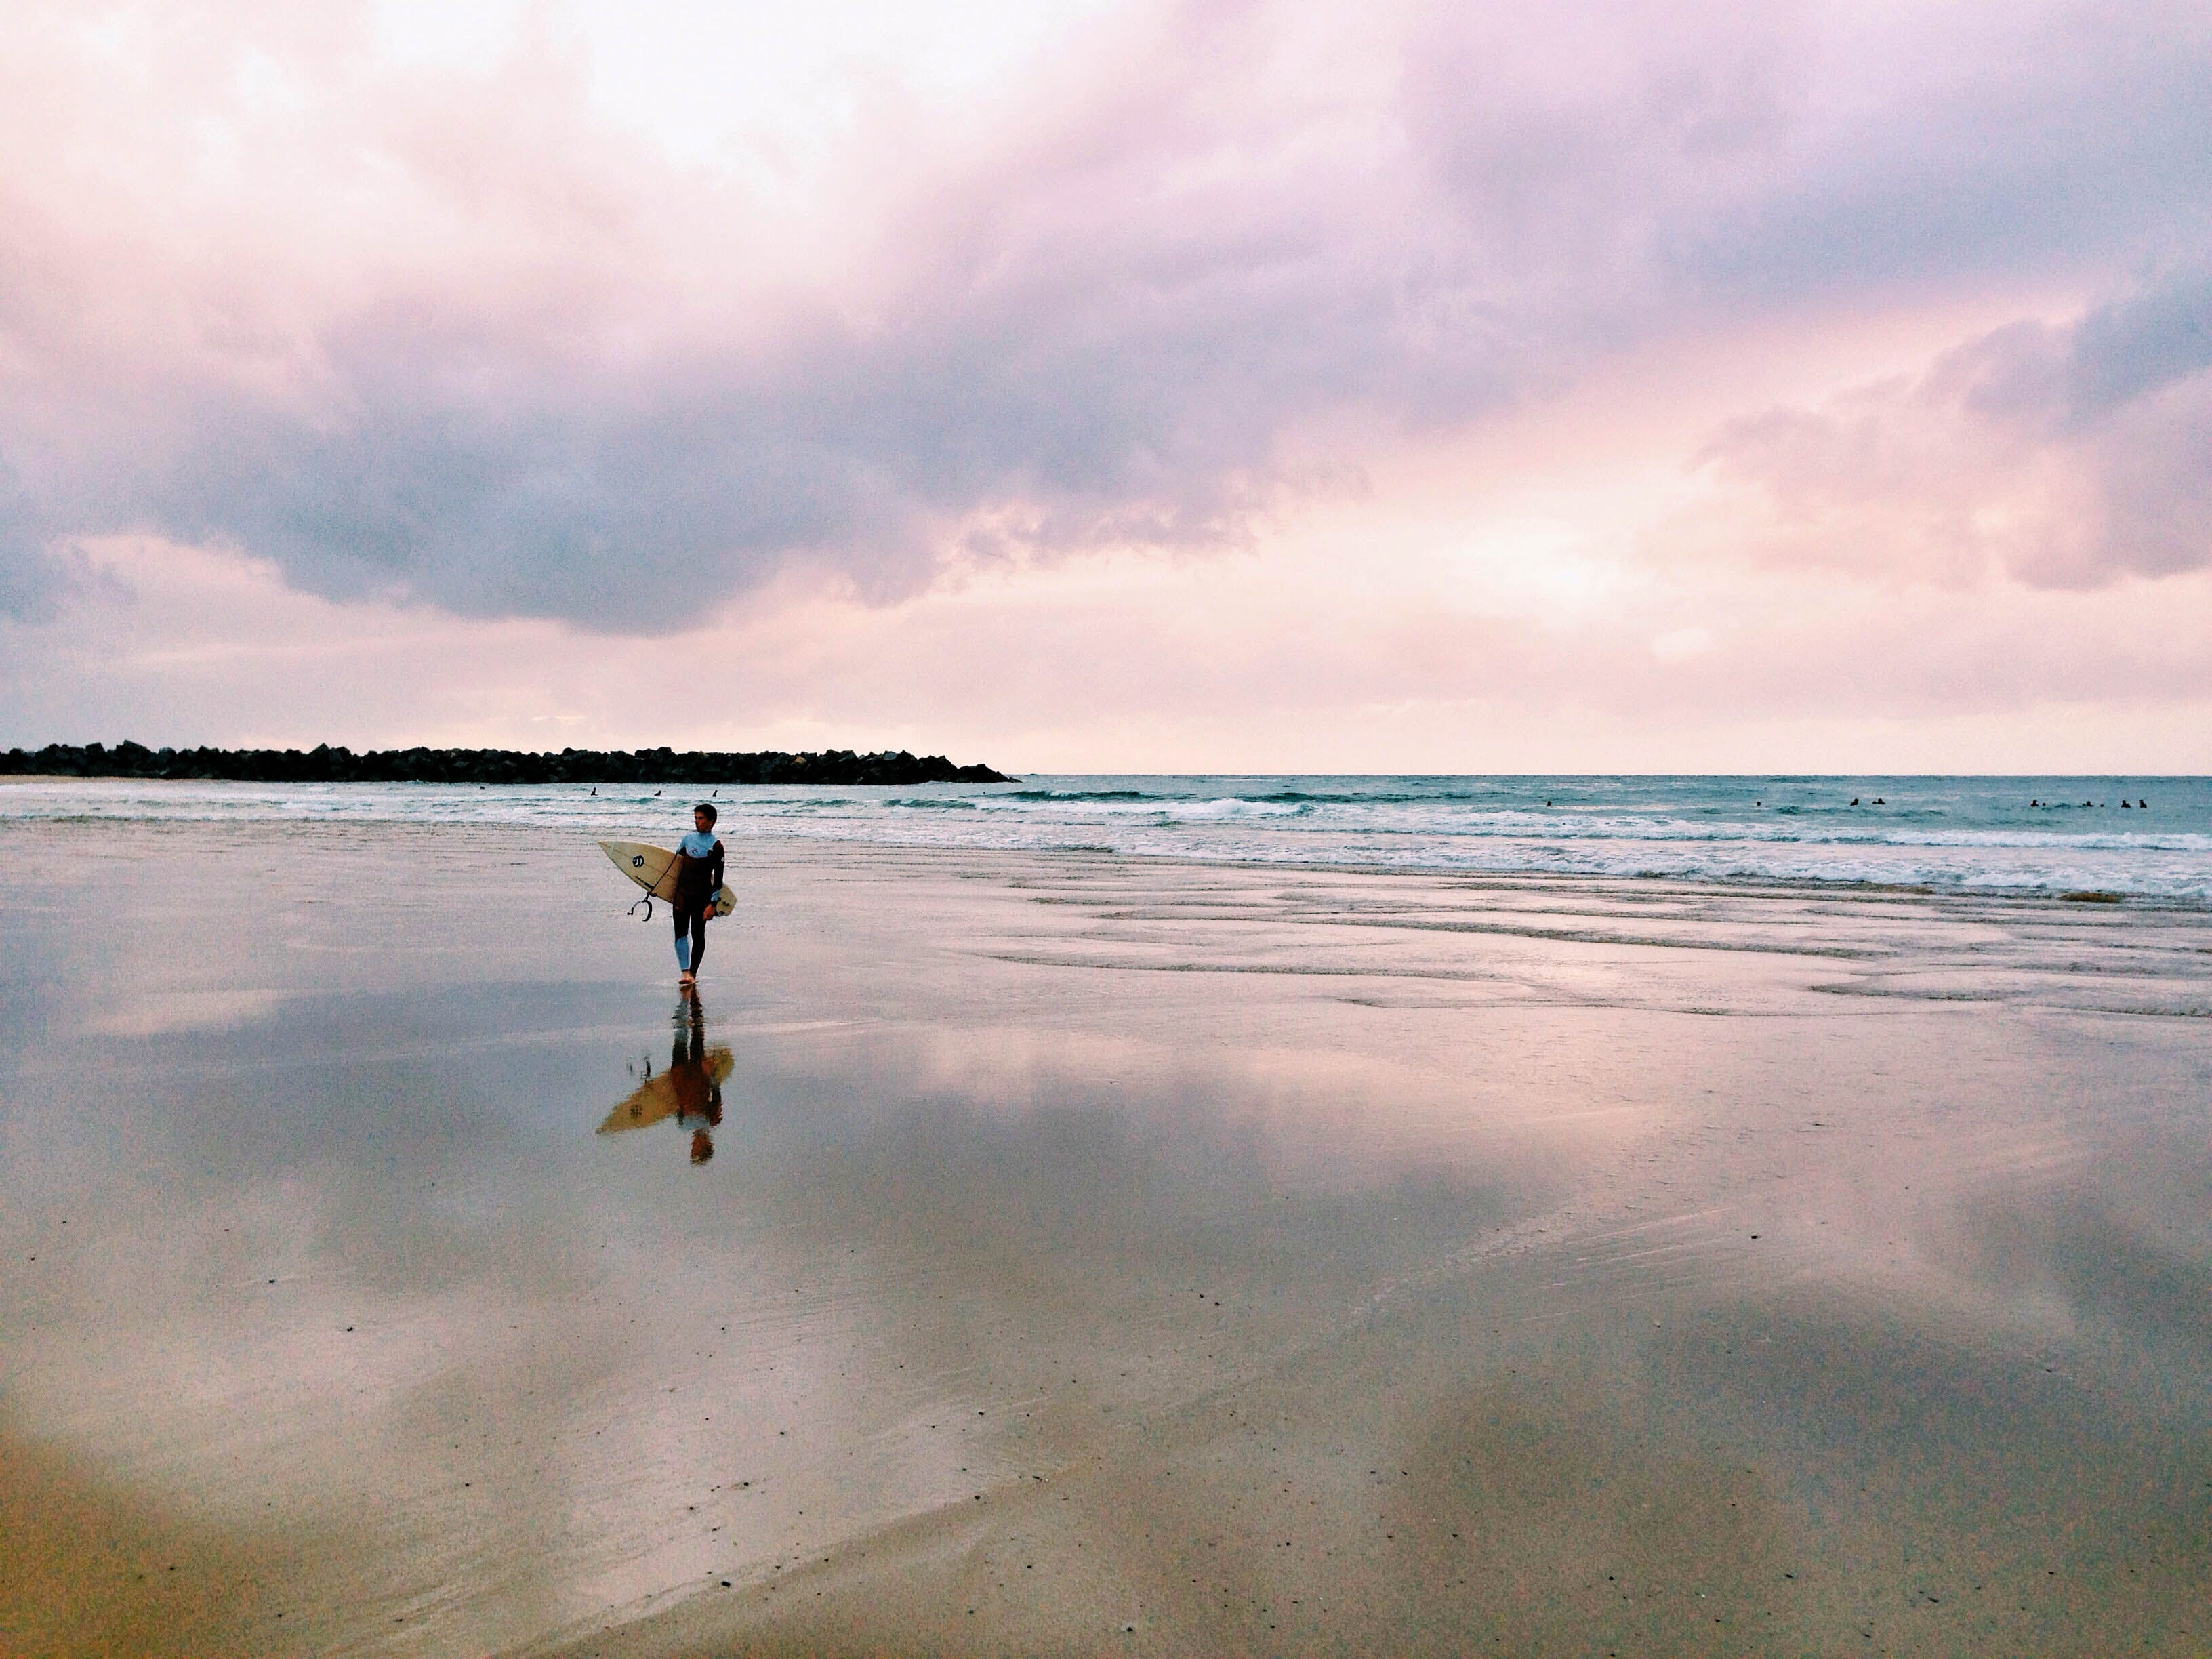 Free stock photo of sea, person, beach, surfing